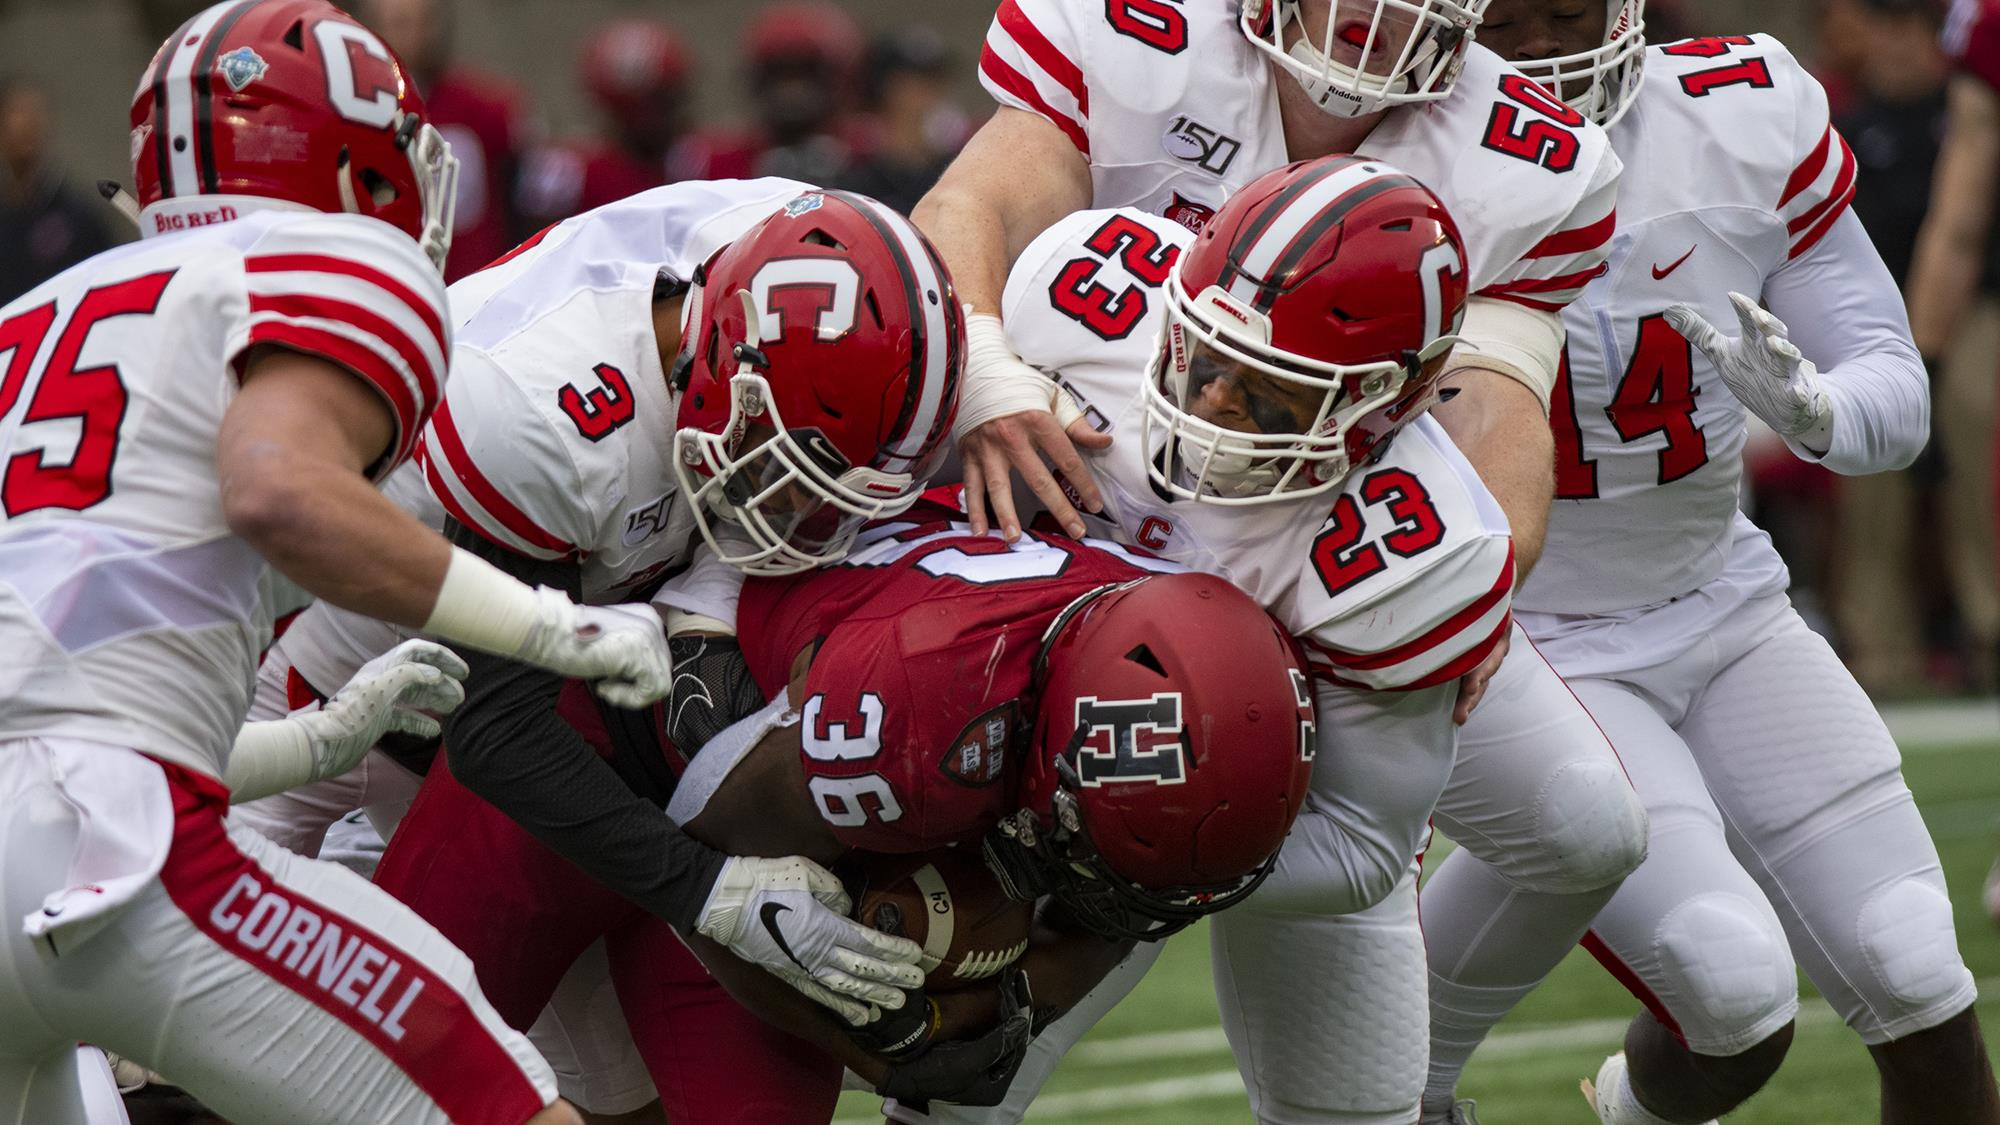 The Cornell defense, with David Jones, XXXX, Jelani Taylor, William Baker and Eric Stoxstill-Diggs in pursuit, brings down a Harvard ball-carrier during a 35-22 loss at Harvard on Saturday, Oct. 12, 2019 at Harvard Stadium in Cambridge, Mass.